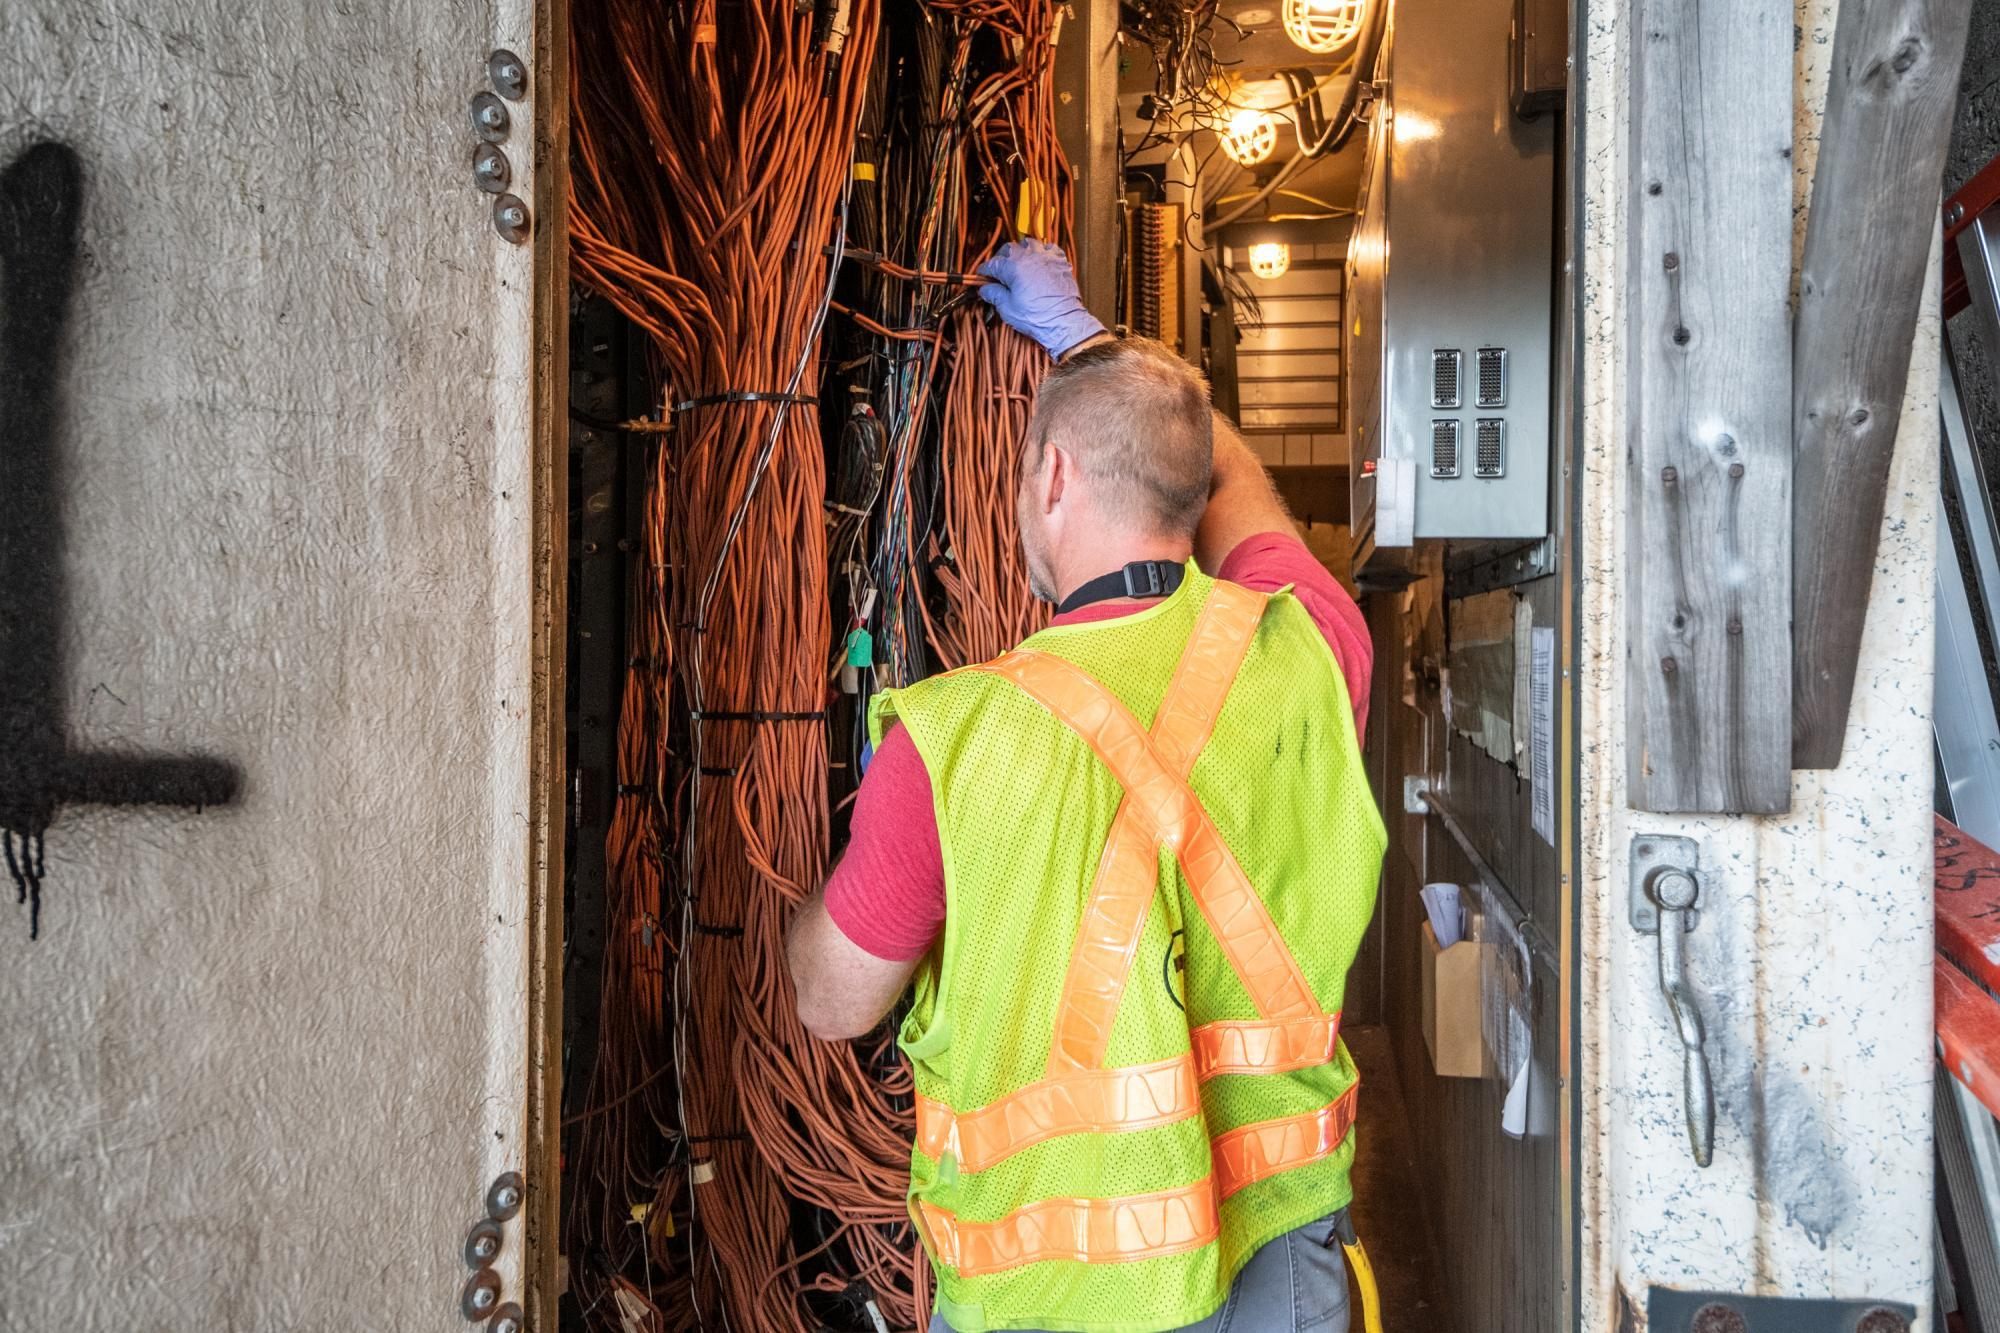 A worker in a neon vest handles wiring during signal repair at the JFK/UMass signals bungalow.